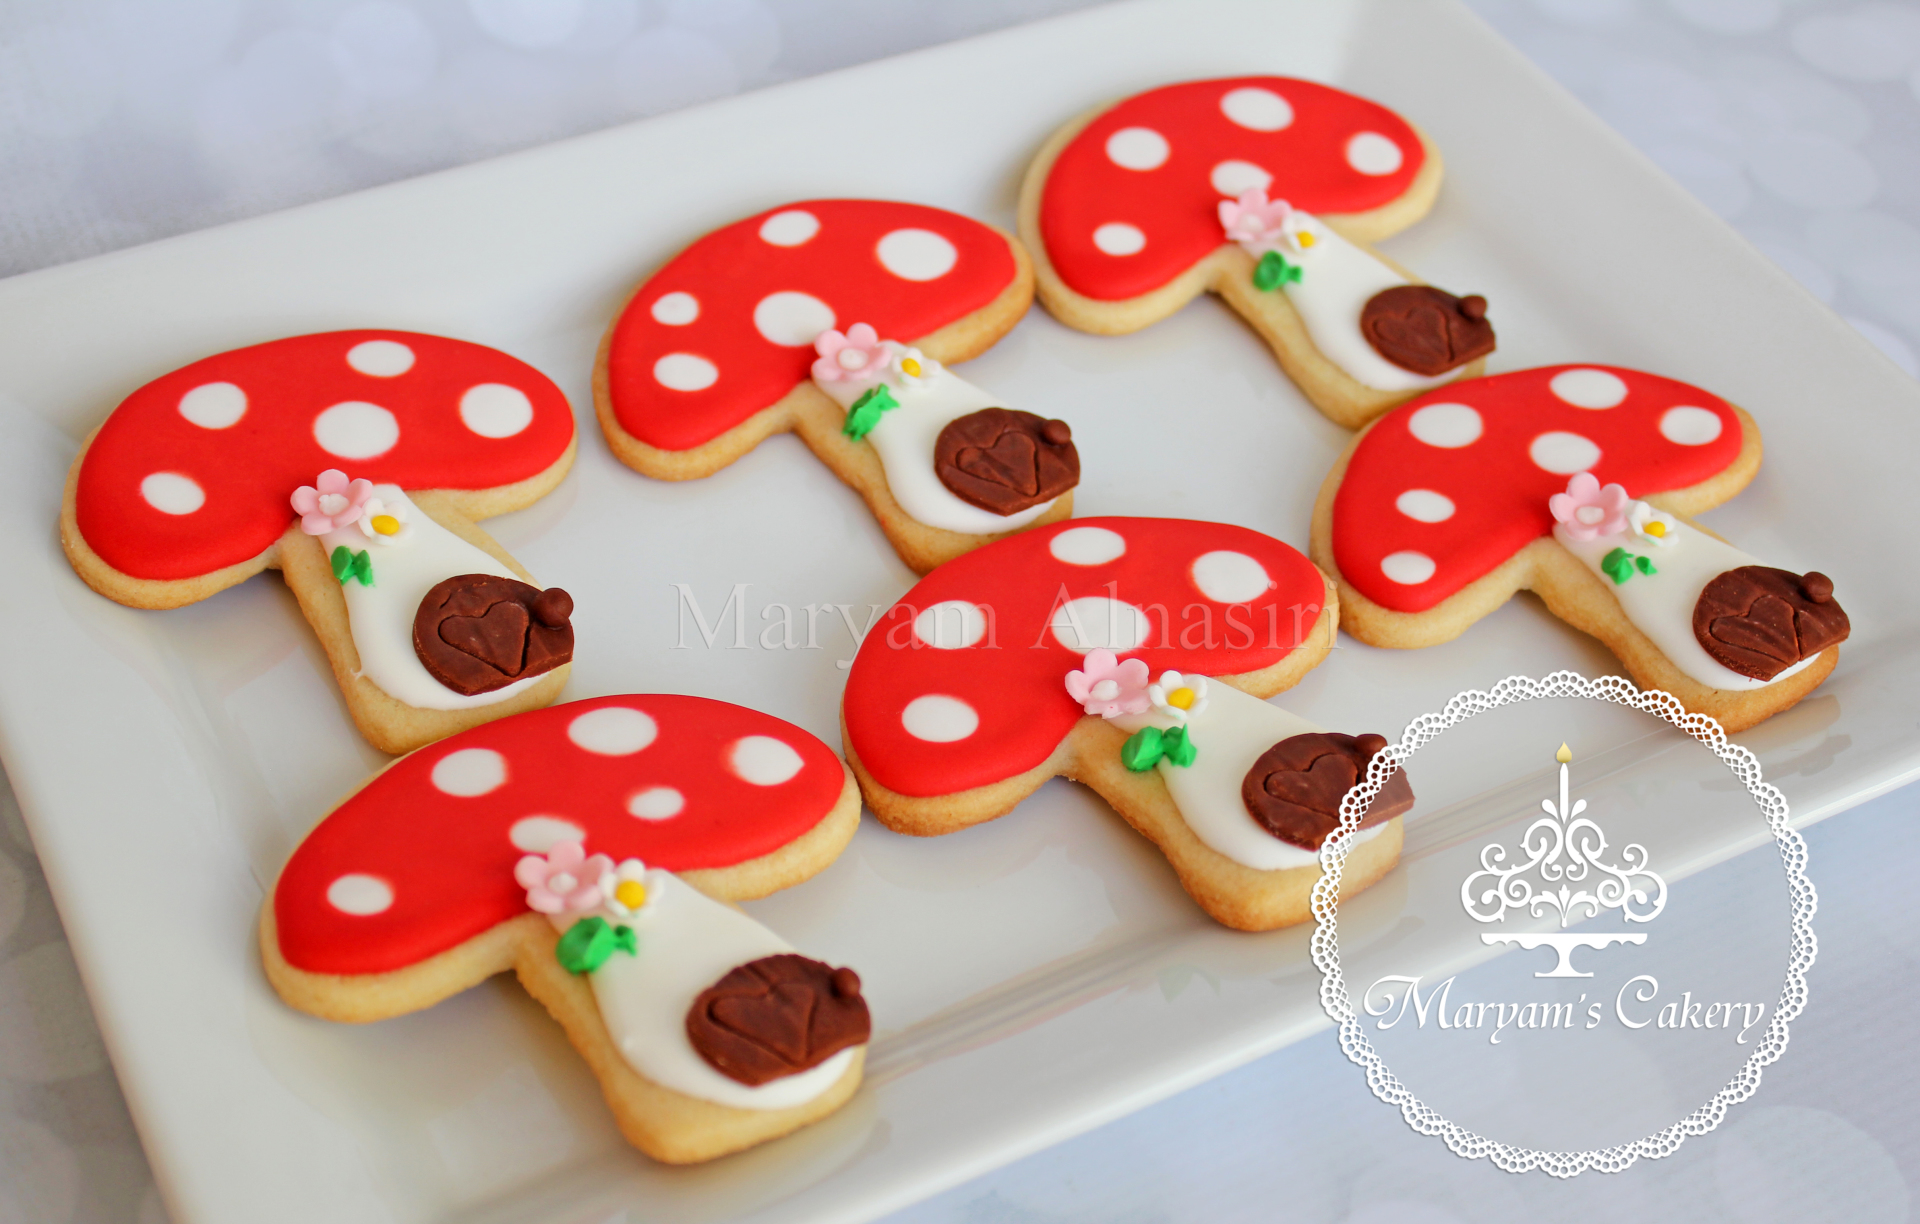 customized toadstool cookies to match the cake